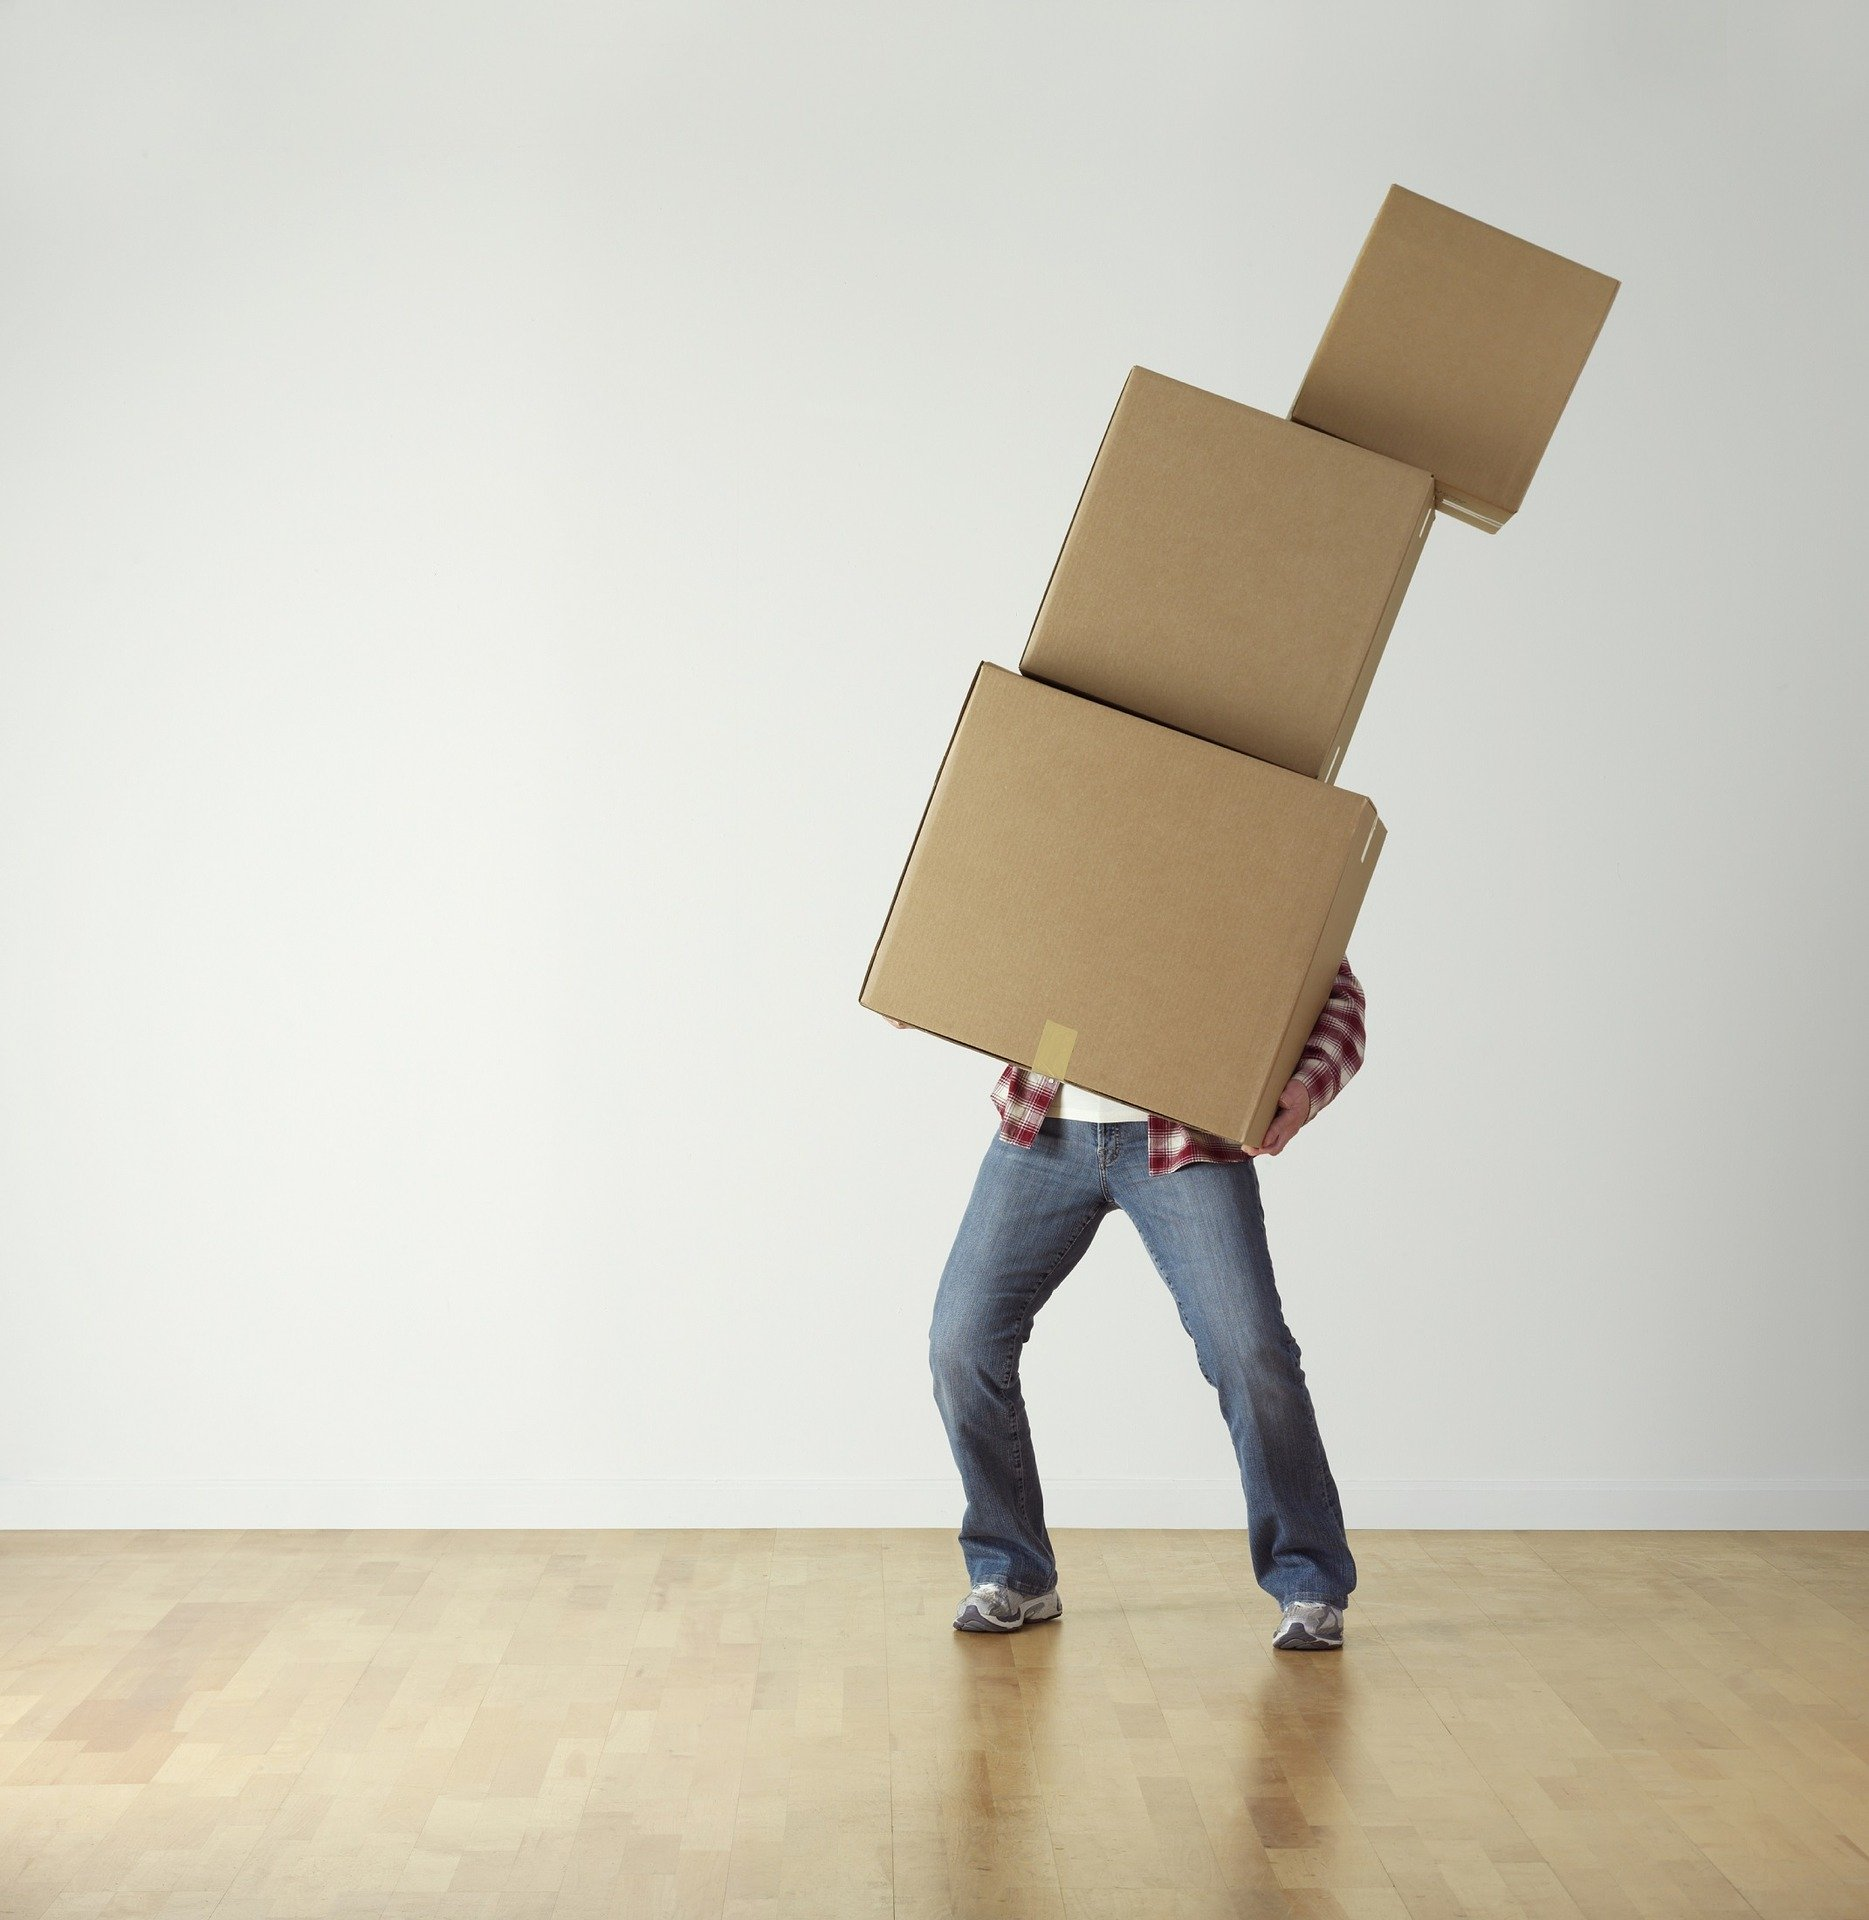 Are you thinking about downsizing?